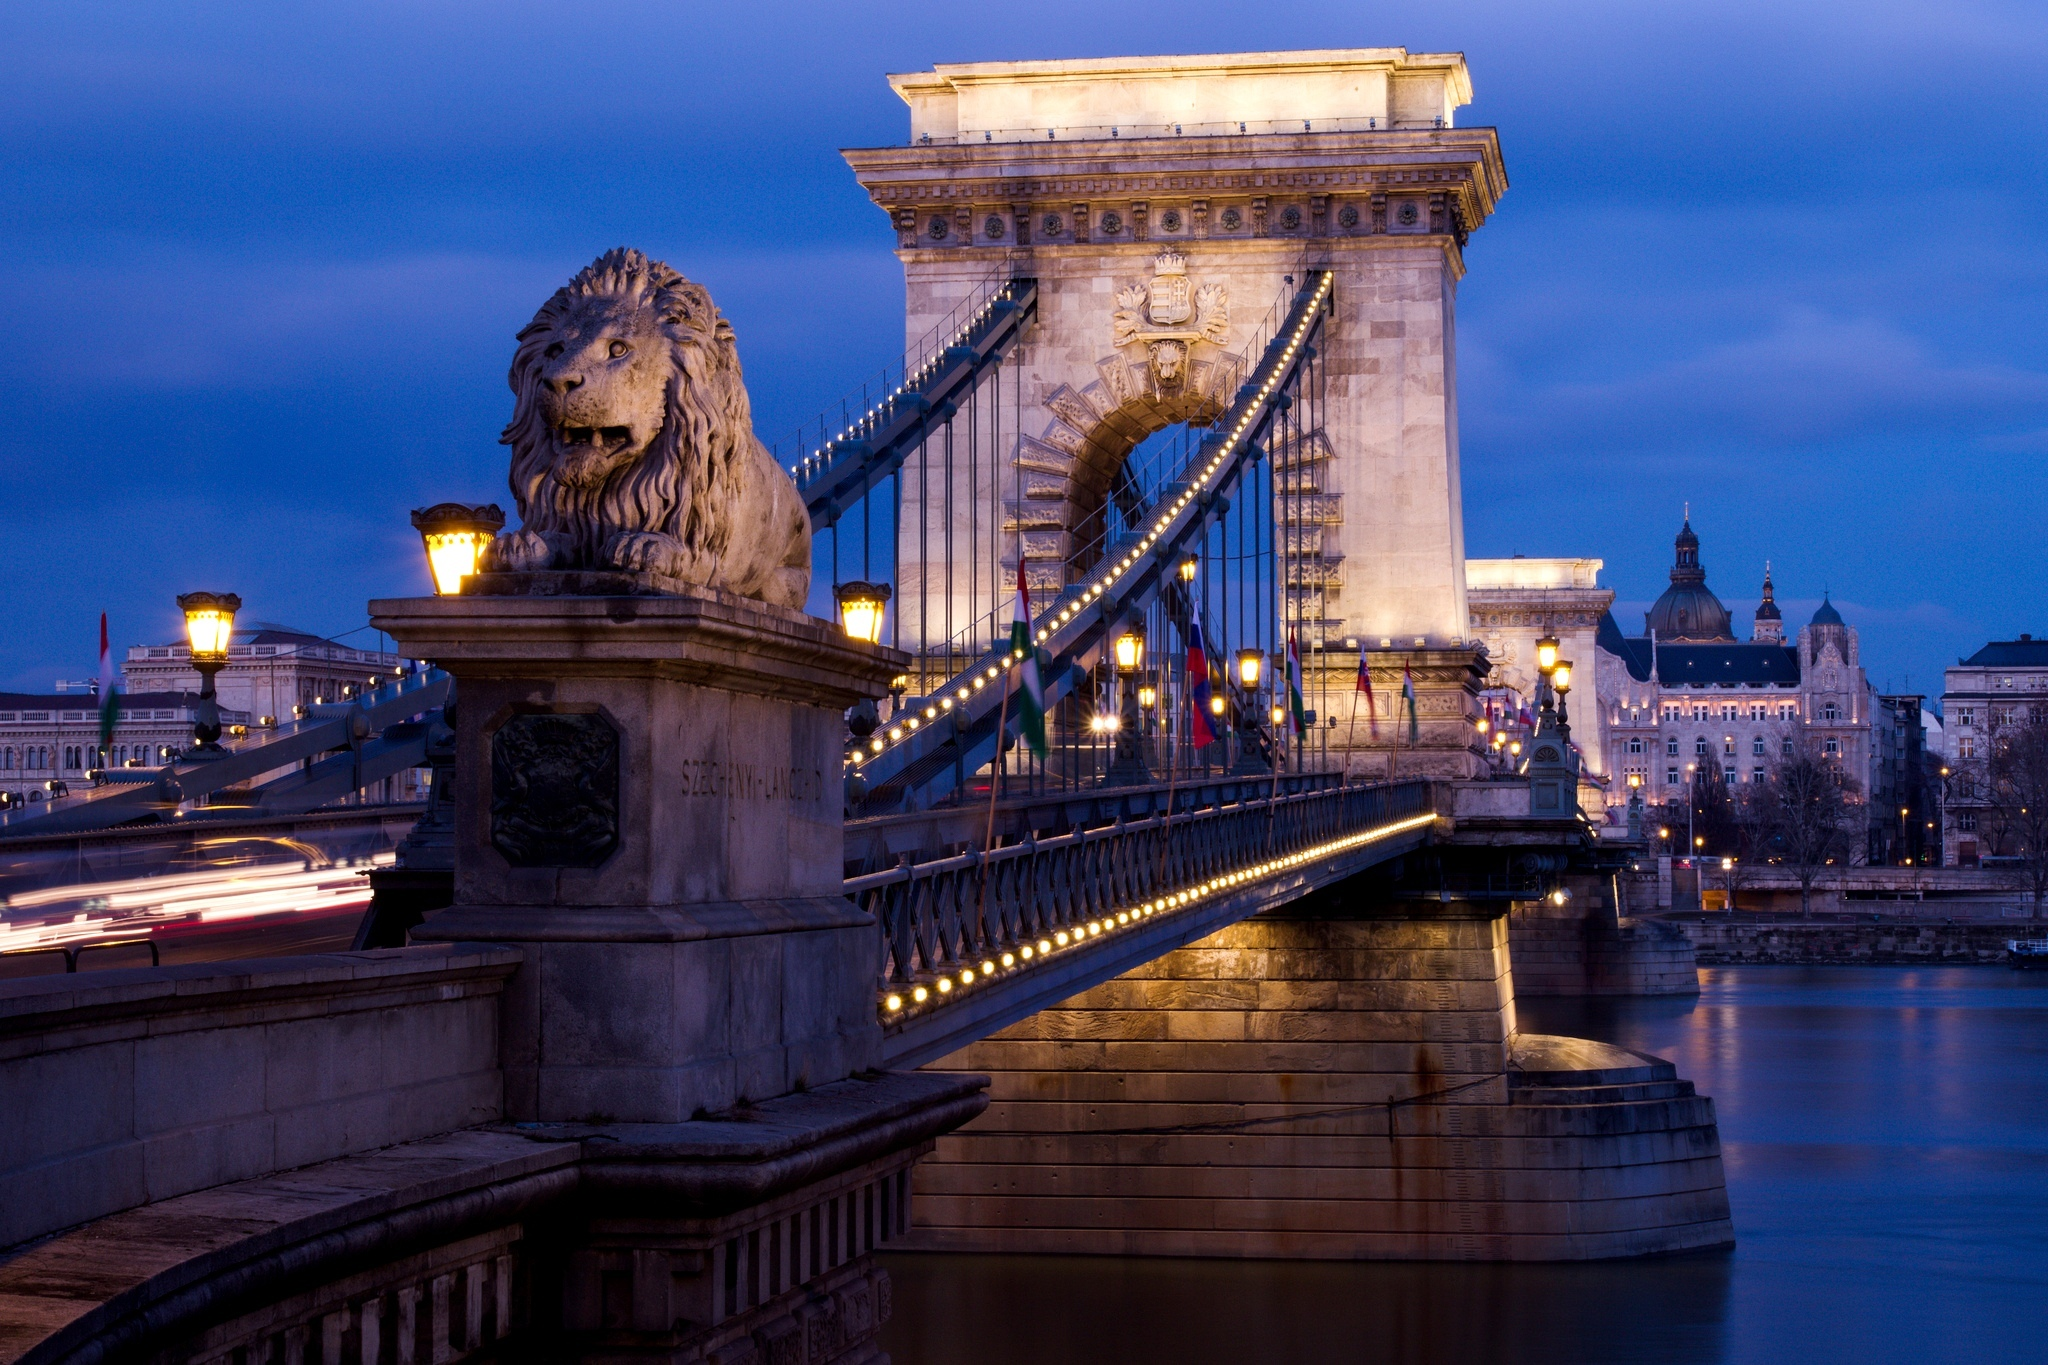 chain_bridge_budapest_at_night-other.jpg